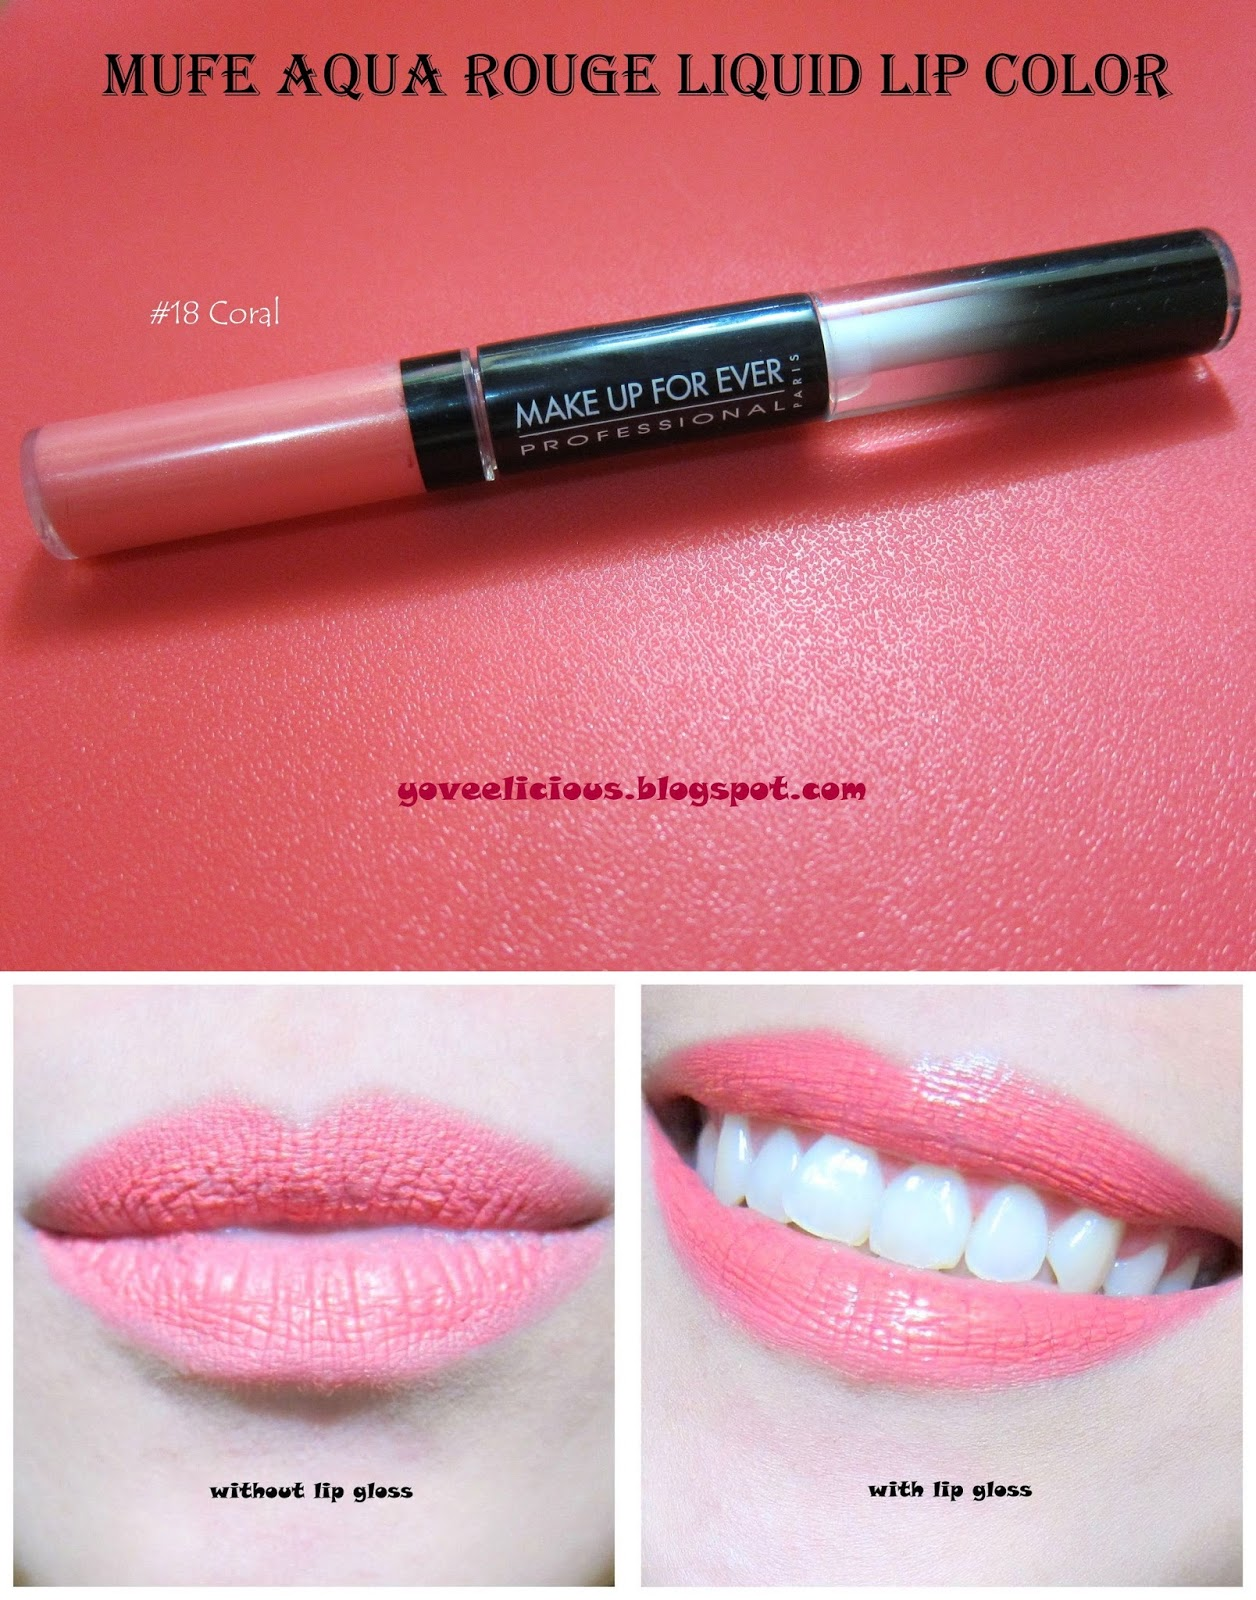 yoveelicious make up for ever aqua rouge liquid lip color review and swatches. Black Bedroom Furniture Sets. Home Design Ideas